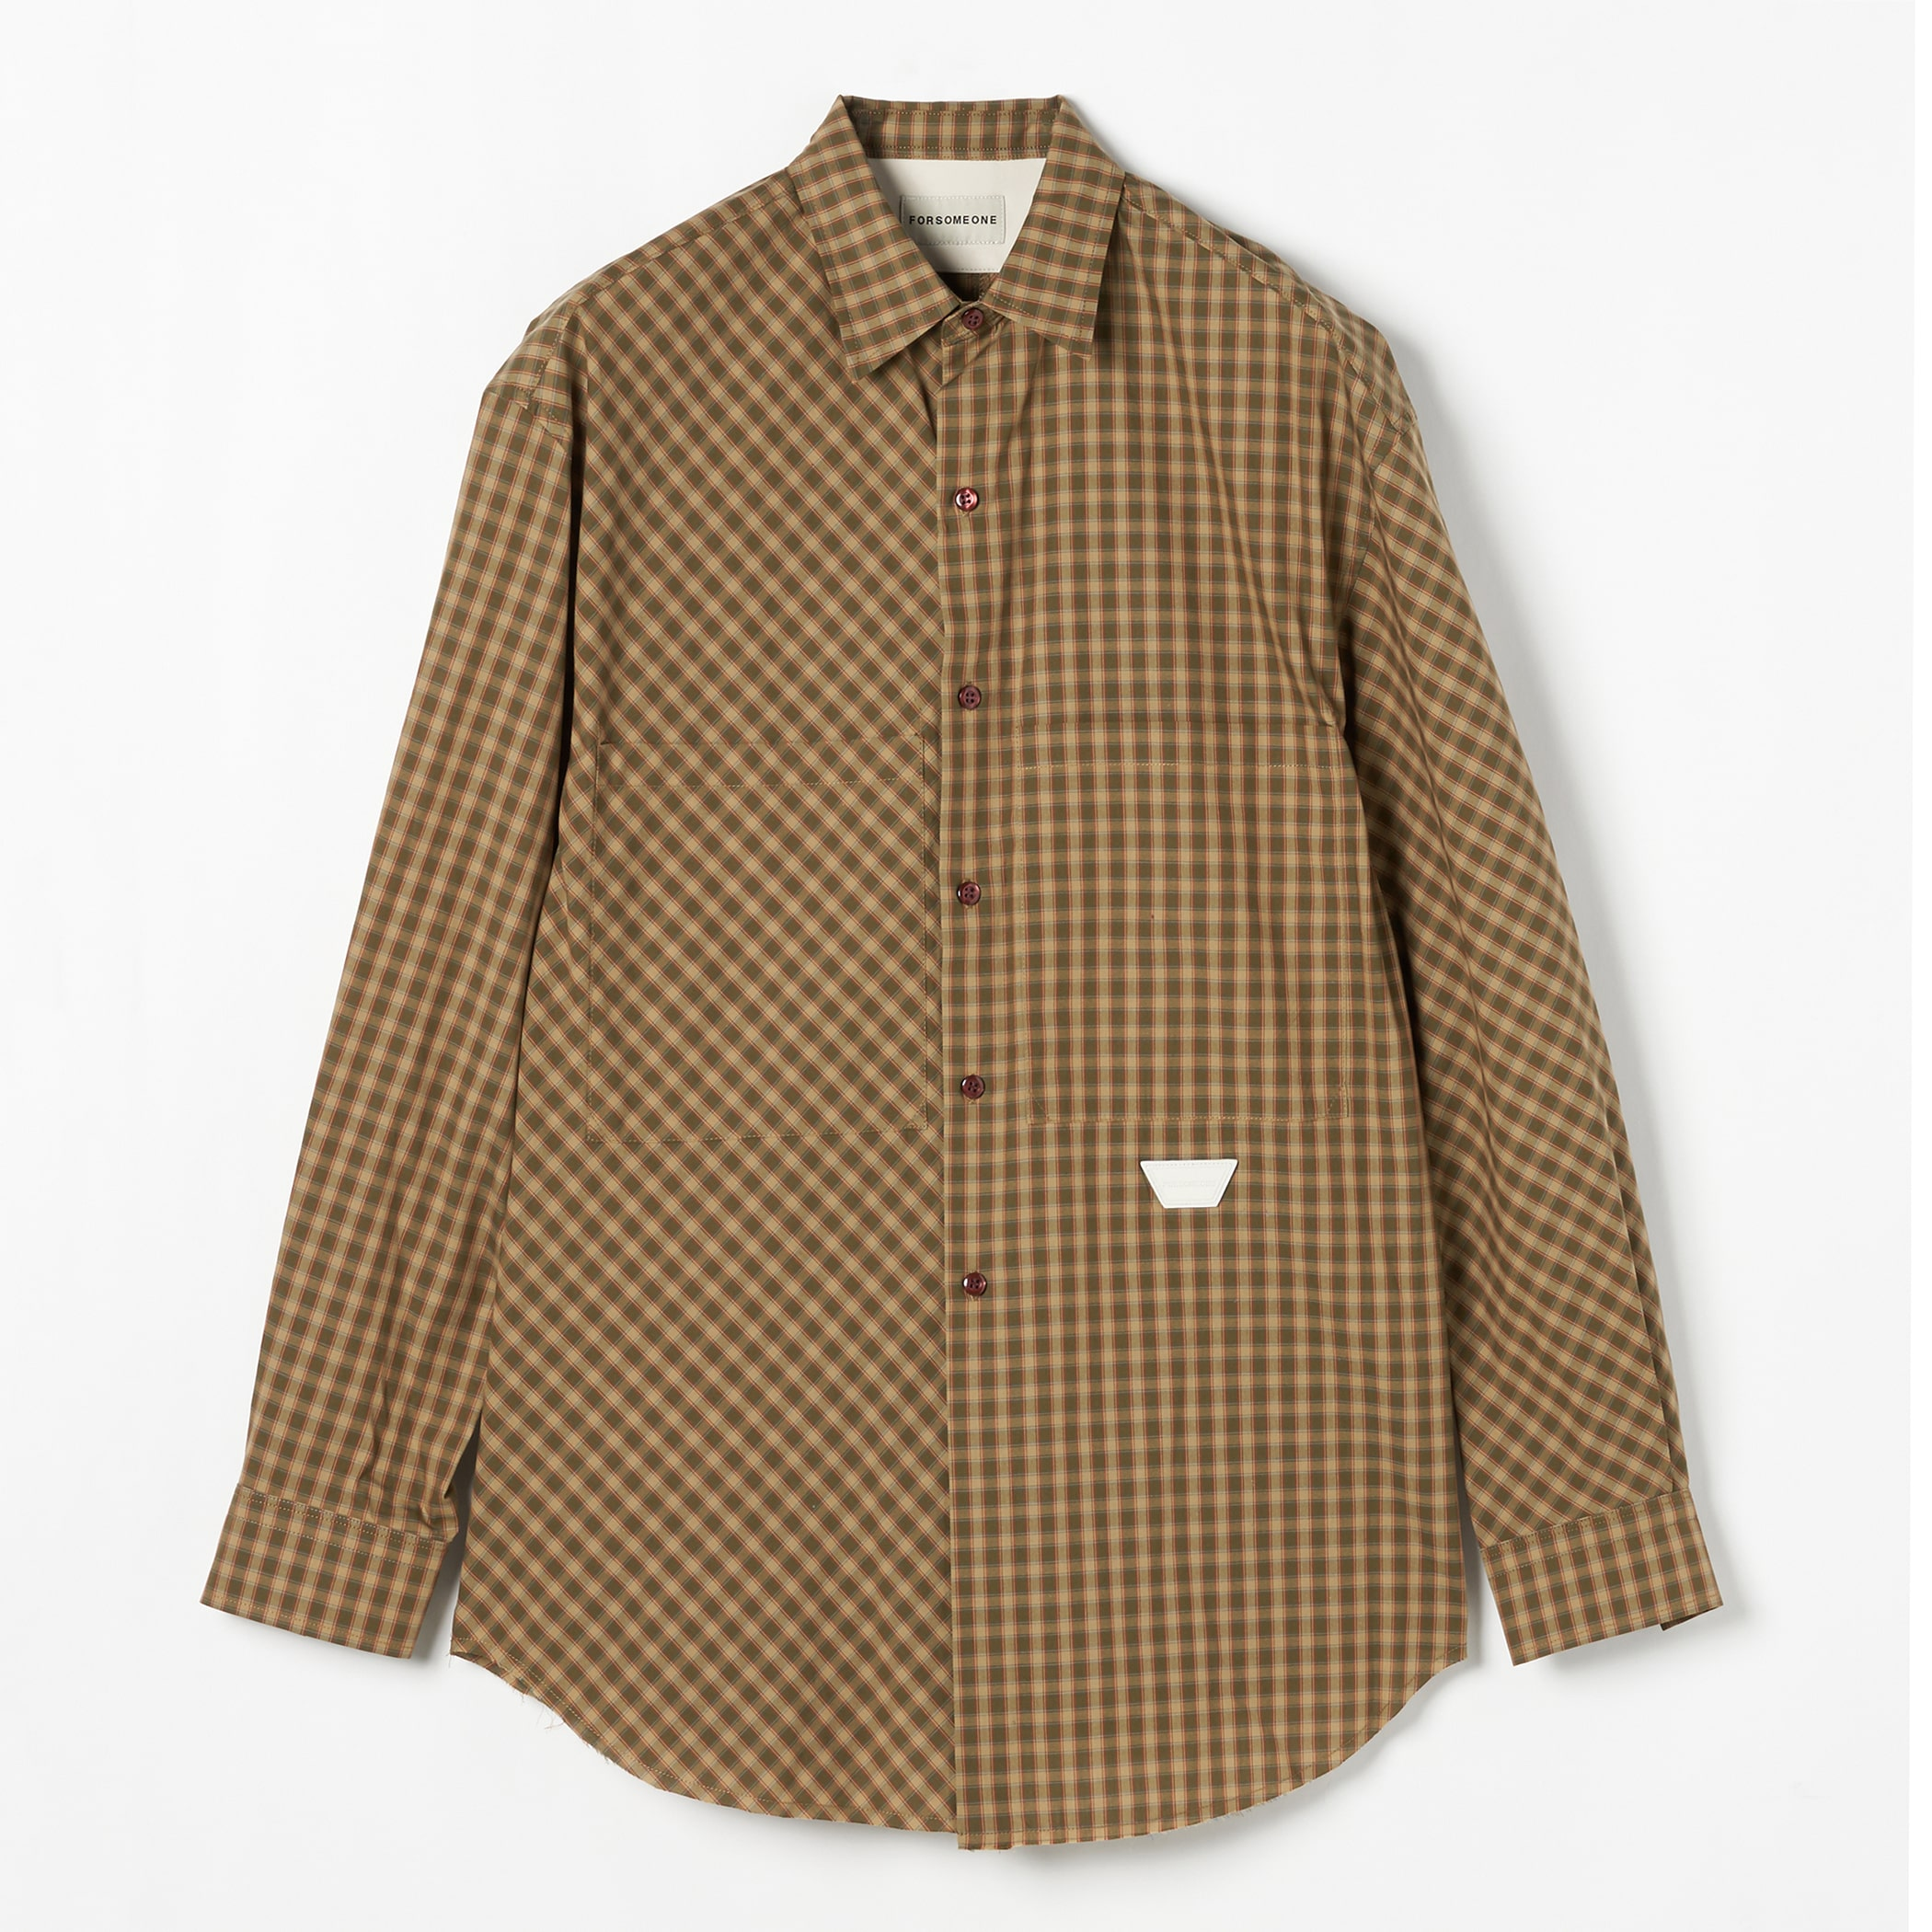 CHECK BROAD SHIRT 詳細画像 Olive 1